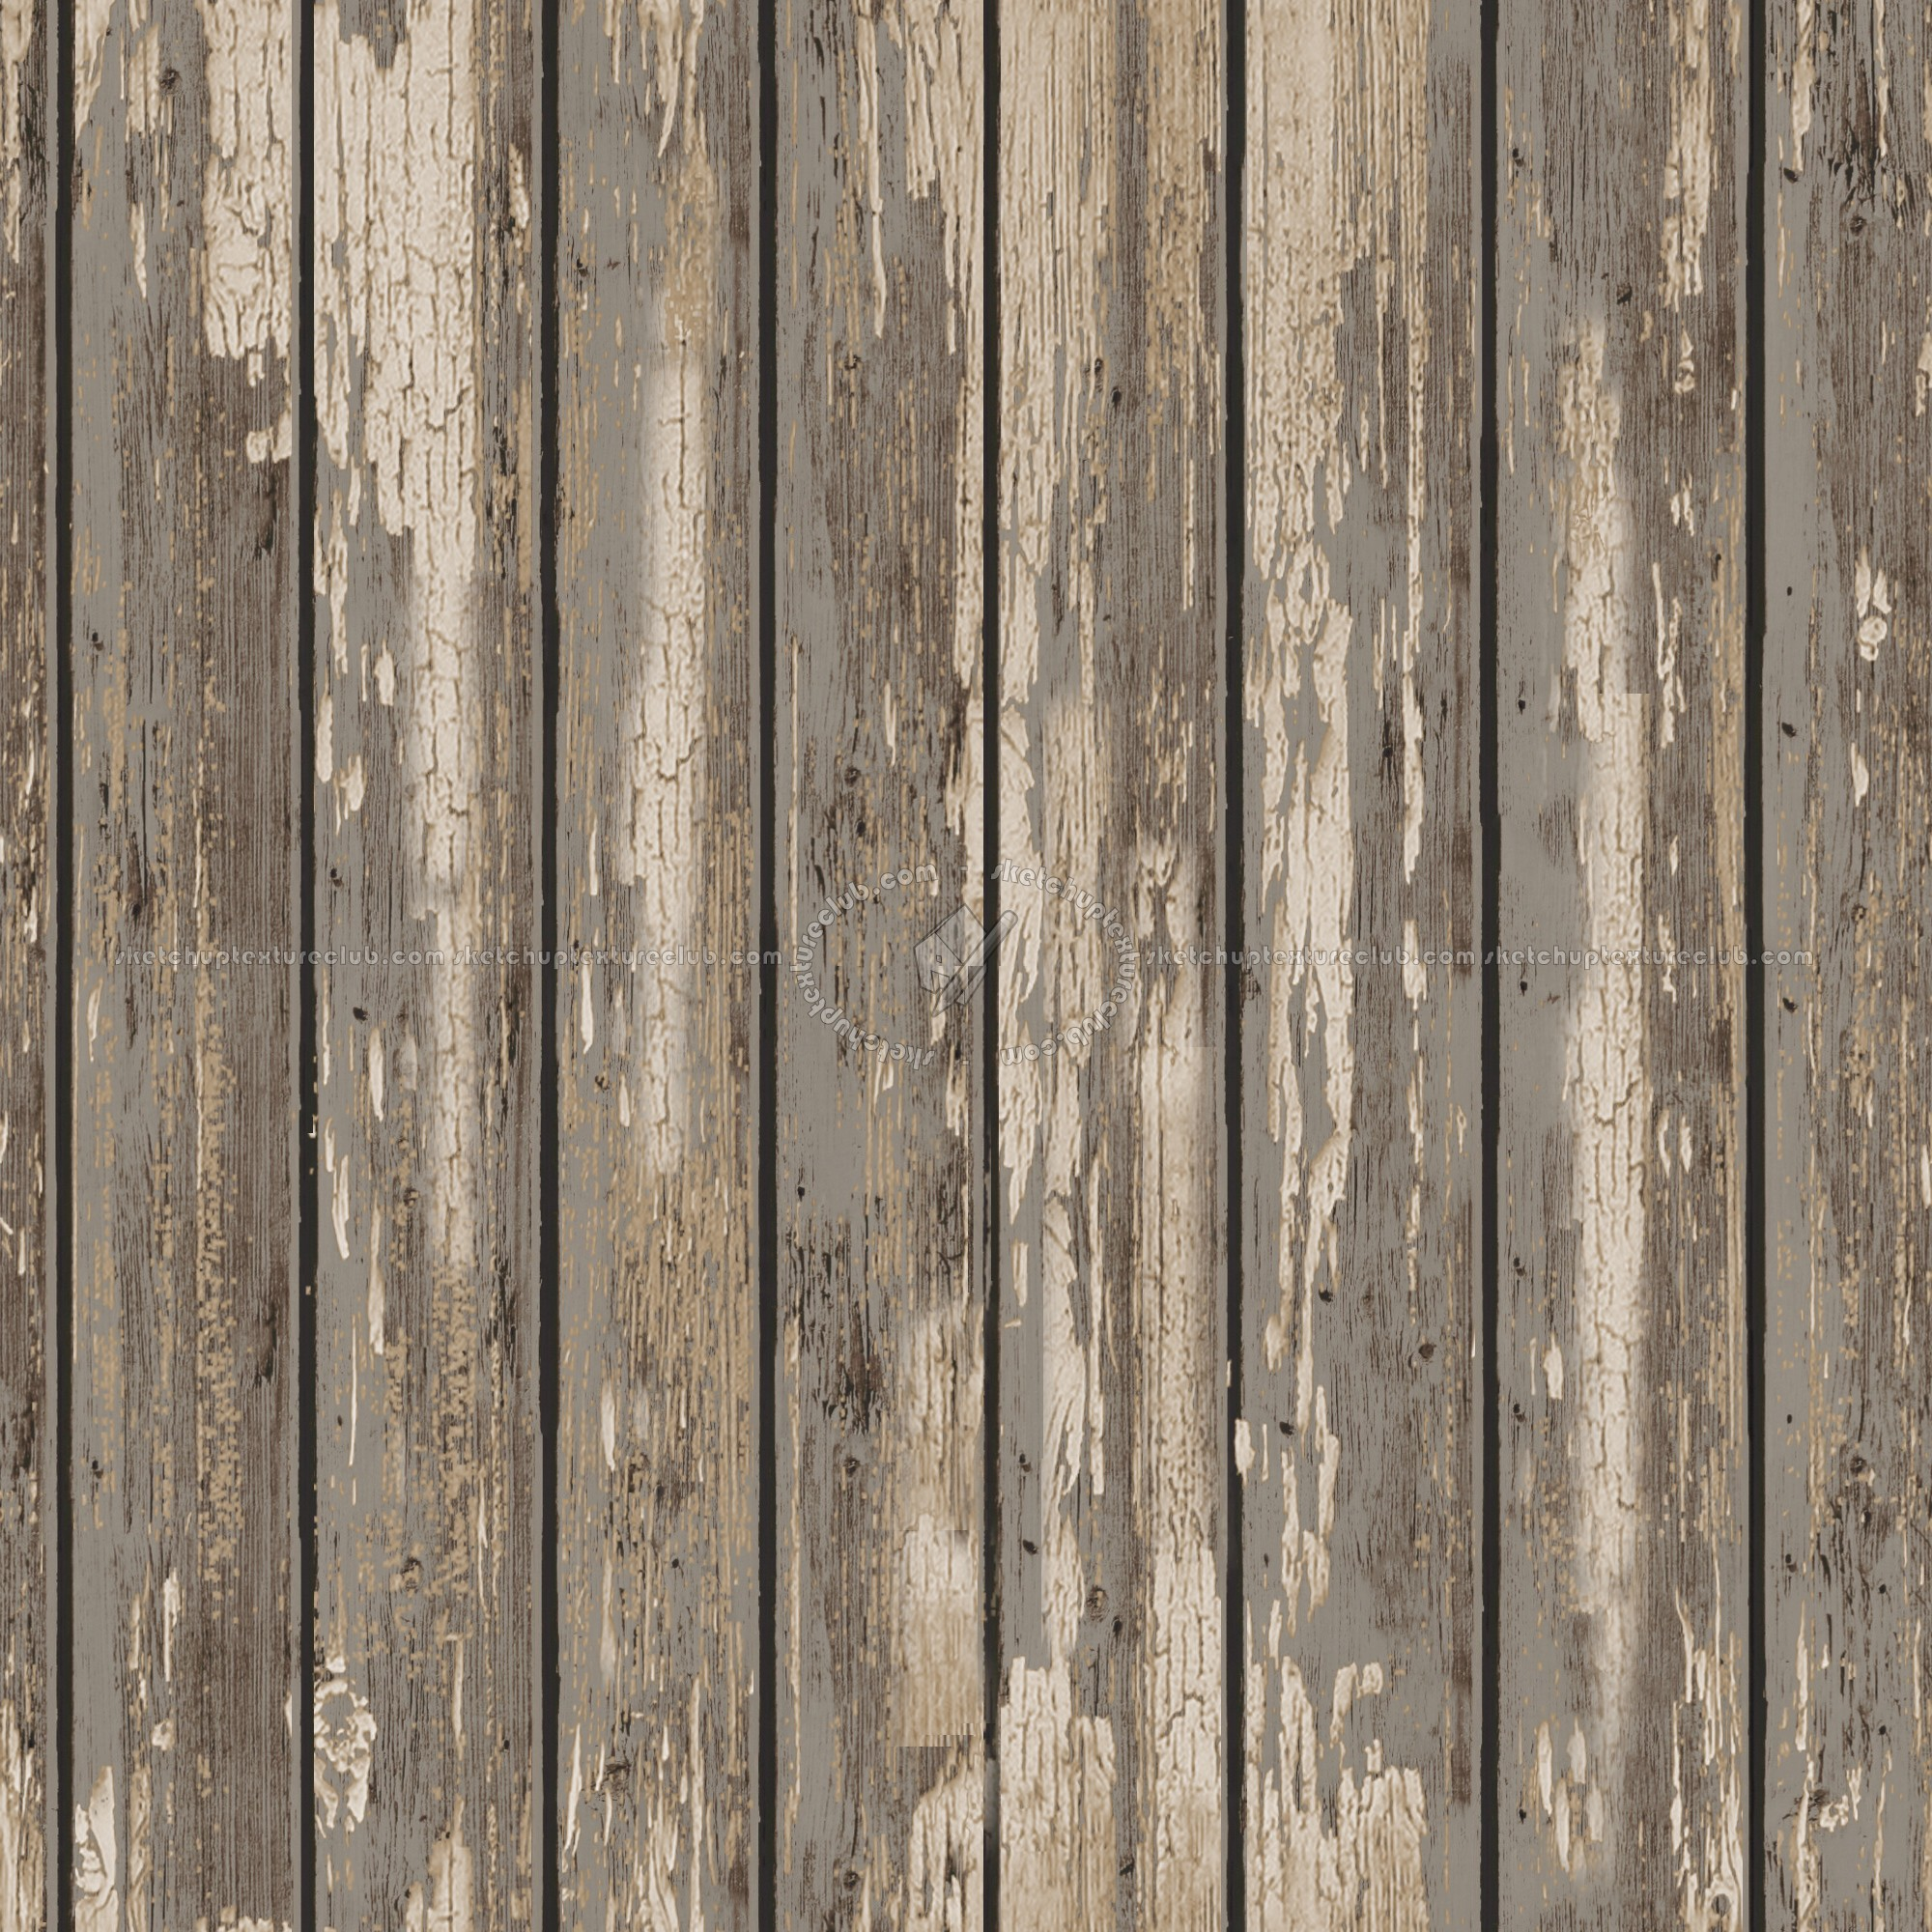 Varnished dirty planks textures seamless